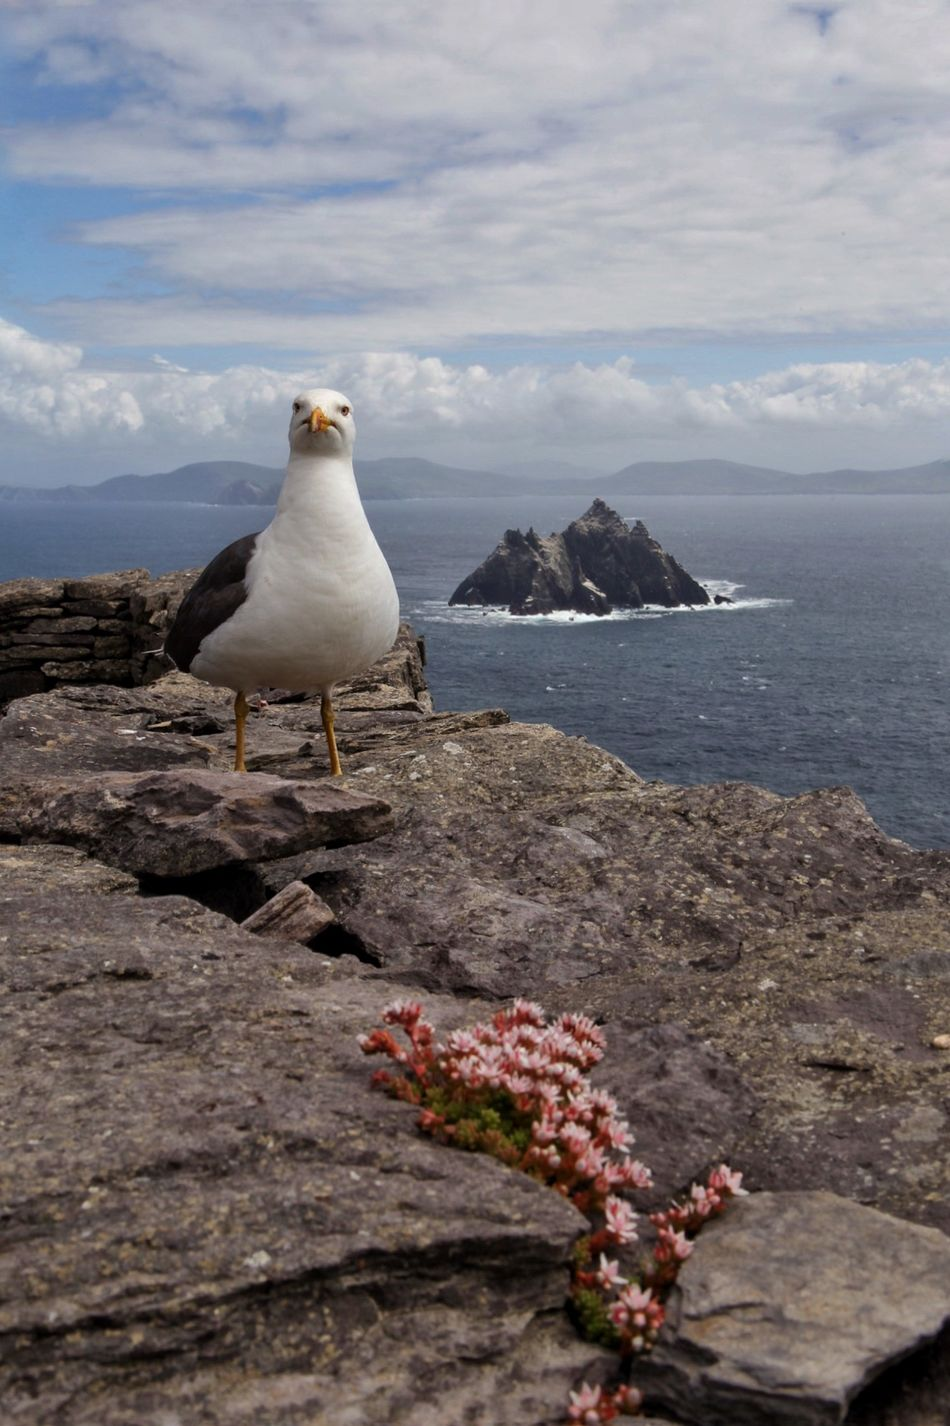 King of the Island Skellig Islands Seagulls Enjoying The View Perspectives The Traveler - 2014 Eyem Awards Nature On Your Doorstep Capture The Moment